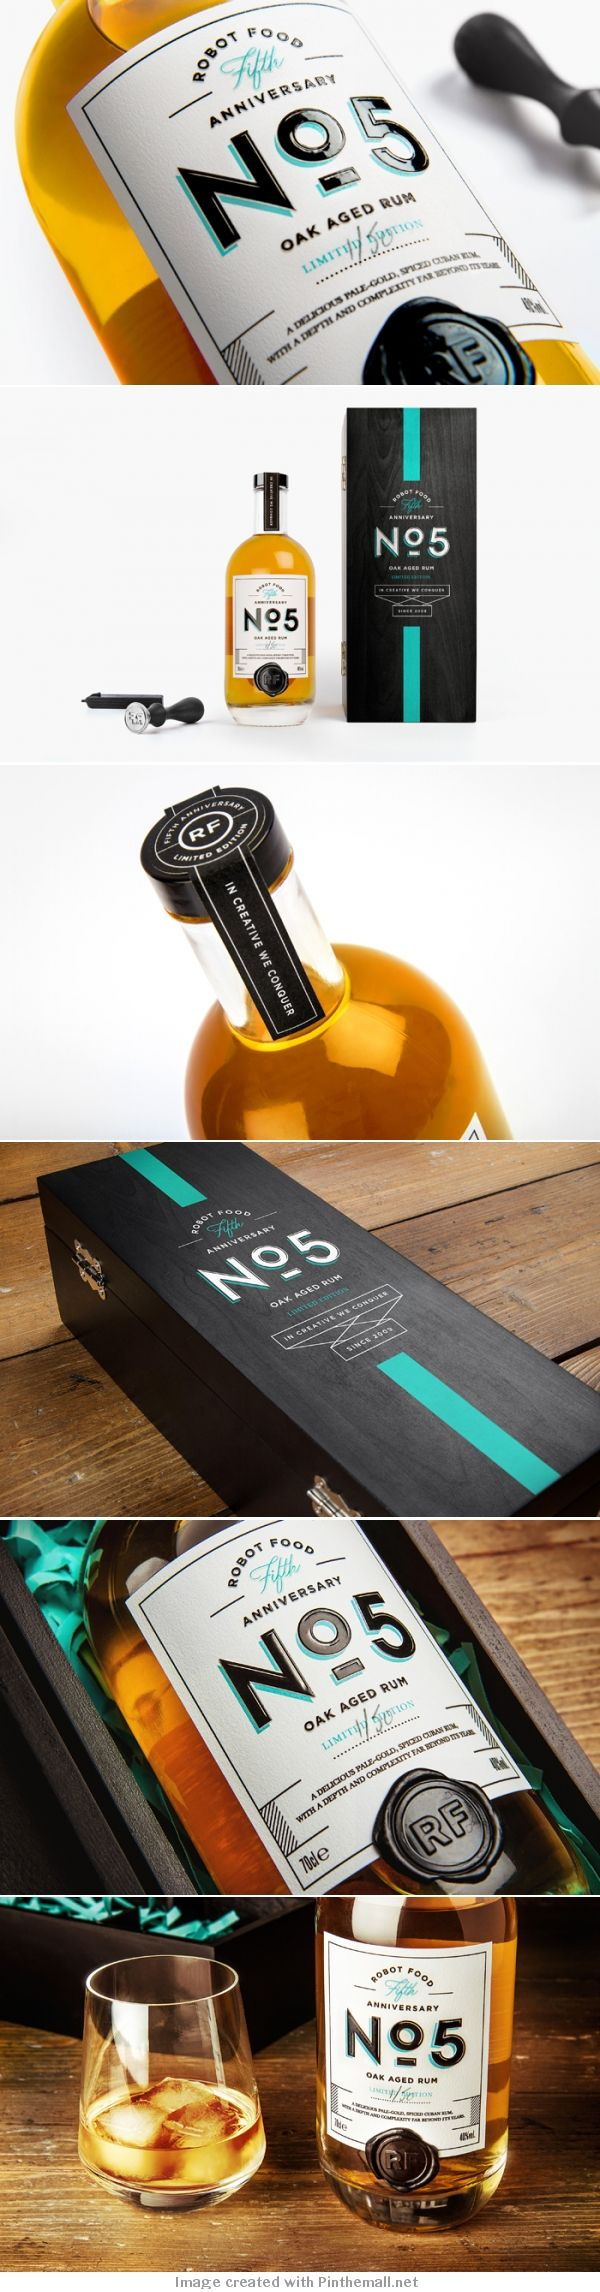 Robot Foods Fifth Anniversary Oak Aged Rum Limited Edition